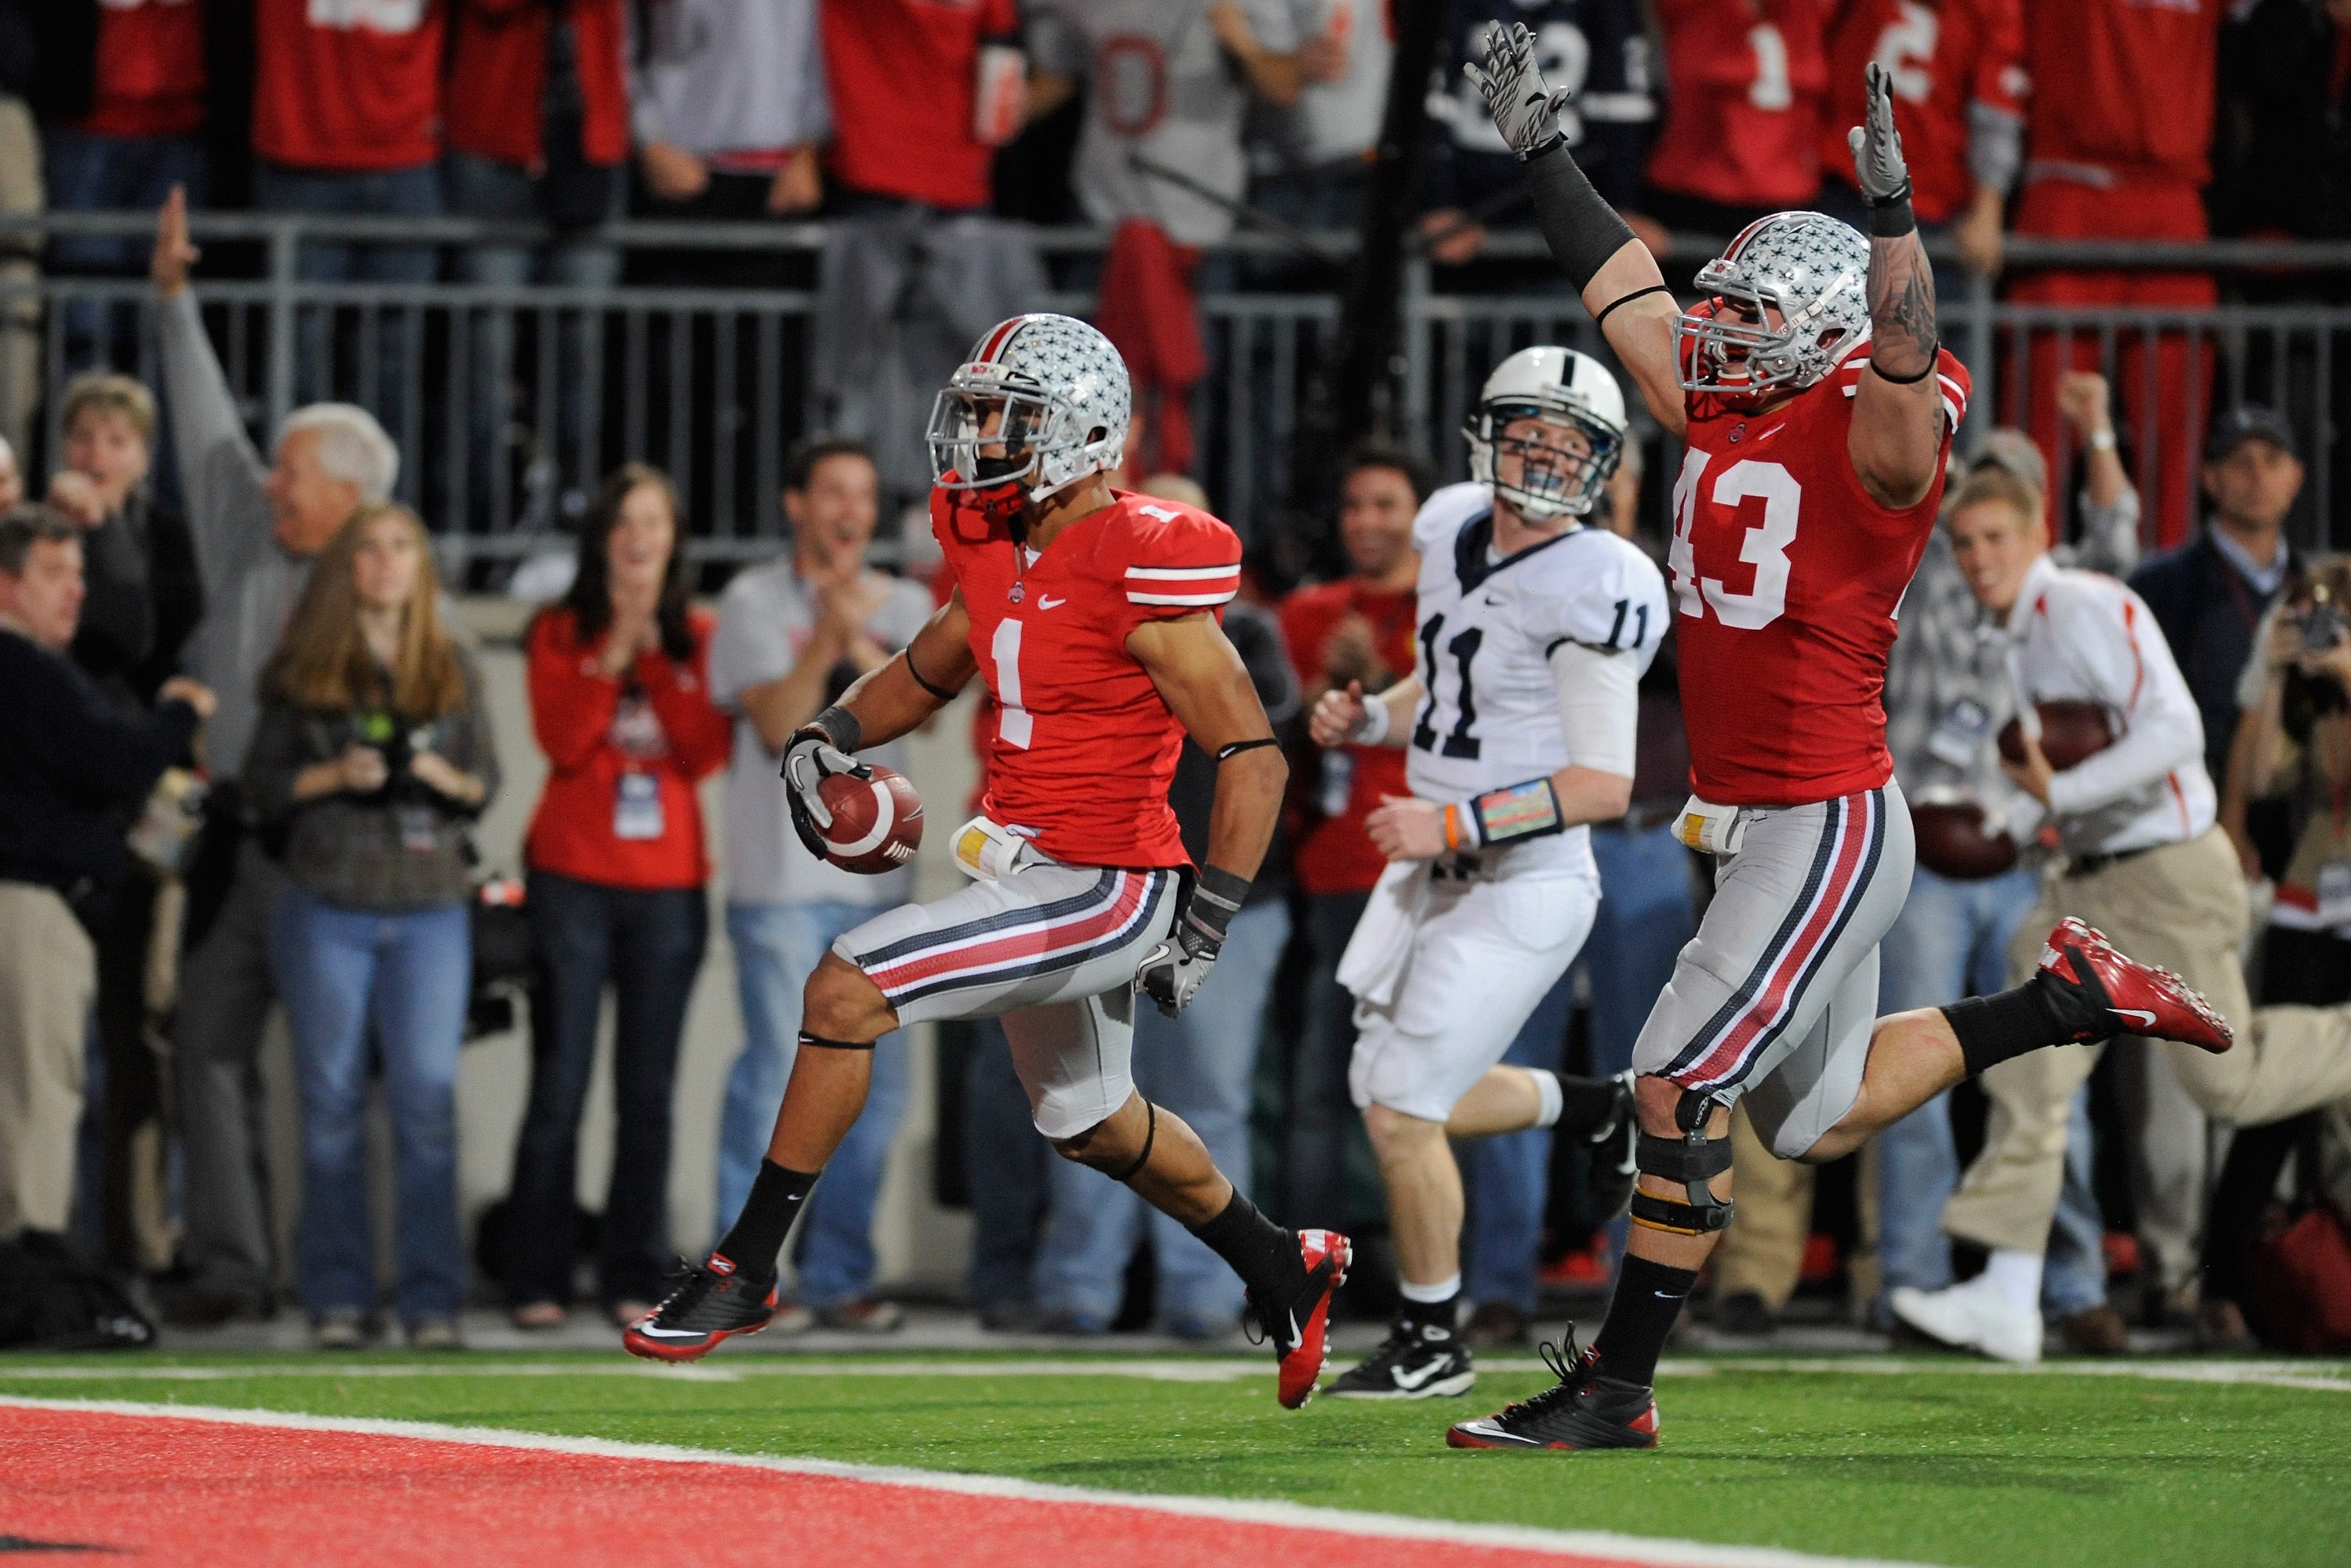 COLUMBUS, OH - NOVEMBER 13:  Devon Torrence #1 of the Ohio State Buckeyes scores on a 34-yard interception return in the third quarter as quarterback Matt McGloin #11 of the Penn State Nittany Lions pursues and Nathan Williams #43 of the Ohio State Buckey